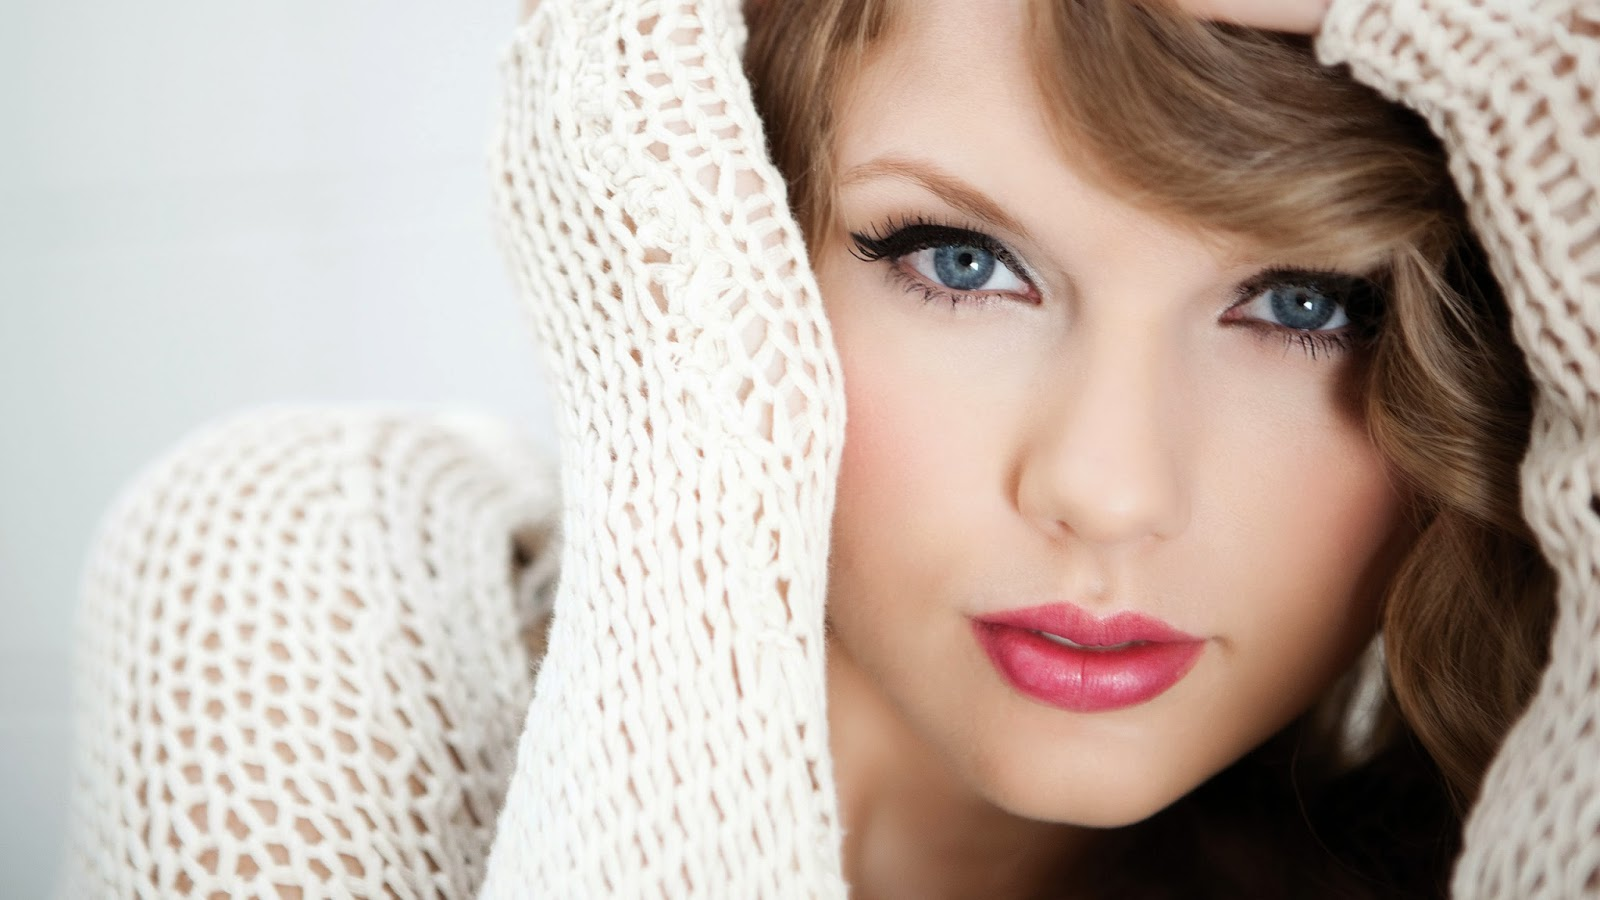 Taylor Swift Beautiful Images: The Most Beautiful Pictures Of Taylor Swift Images